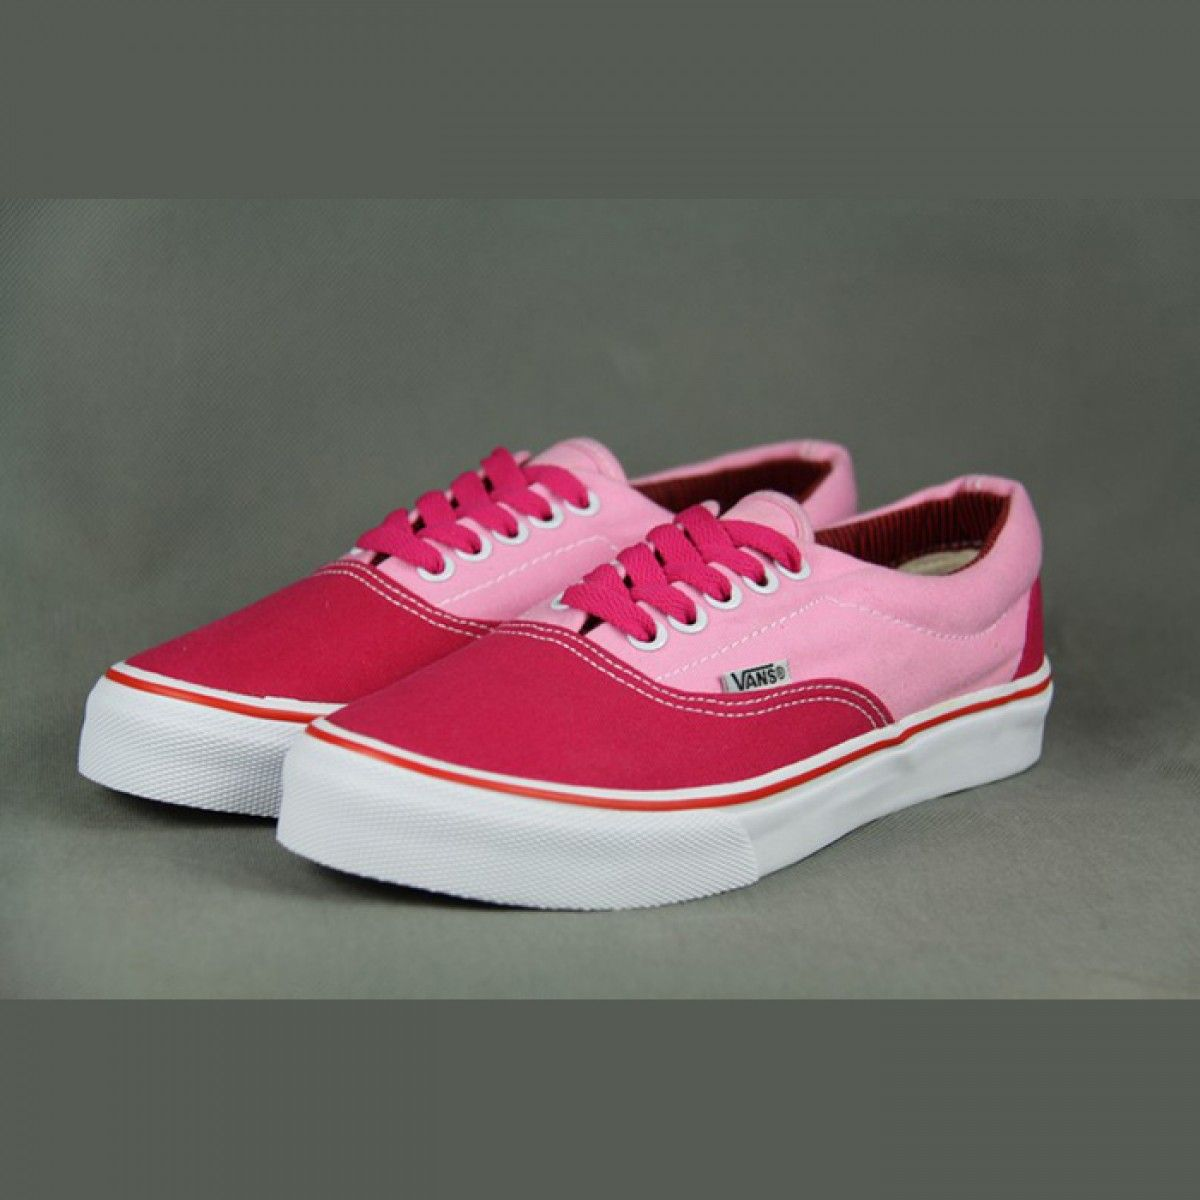 Pin on cheap Vans shoes